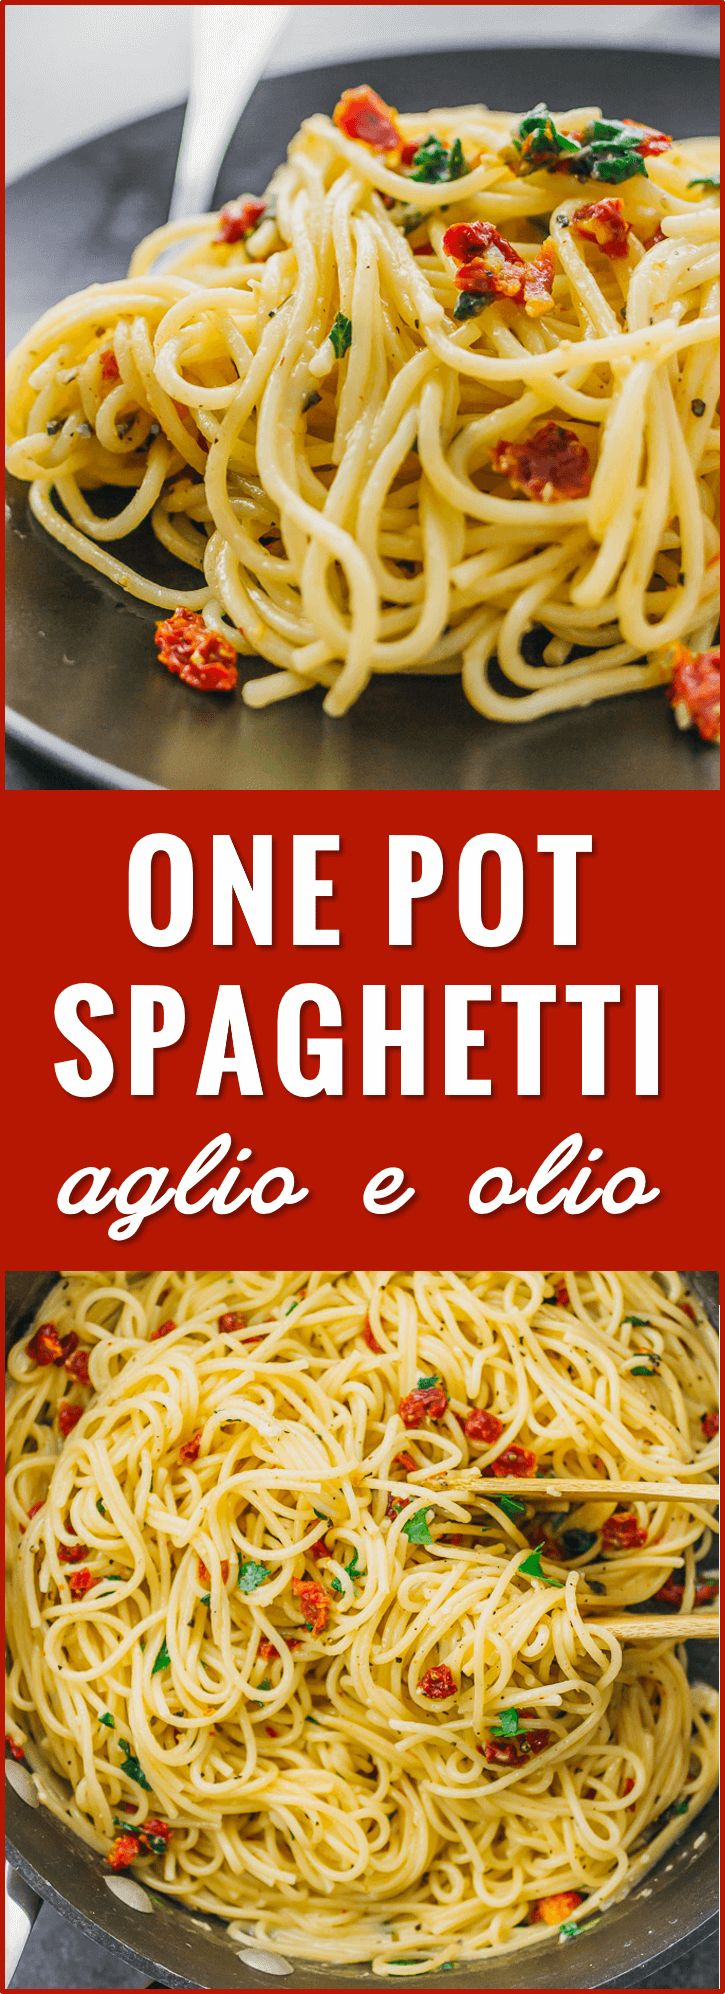 Spaghetti aglio e olio is one of my favorite simple, vegetarian pasta dishes: spaghetti noodles with grated parmesan cheese and diced sun-dried tomatoes, all cooked in one pot. recipe, easy, and meatballs, squash, with canned sauce, vegetarian, beef, crockpot, creamy, olive oil, ina garten, rezept, garlic, red peppers, zucchini noodles, simple via @savory tooth